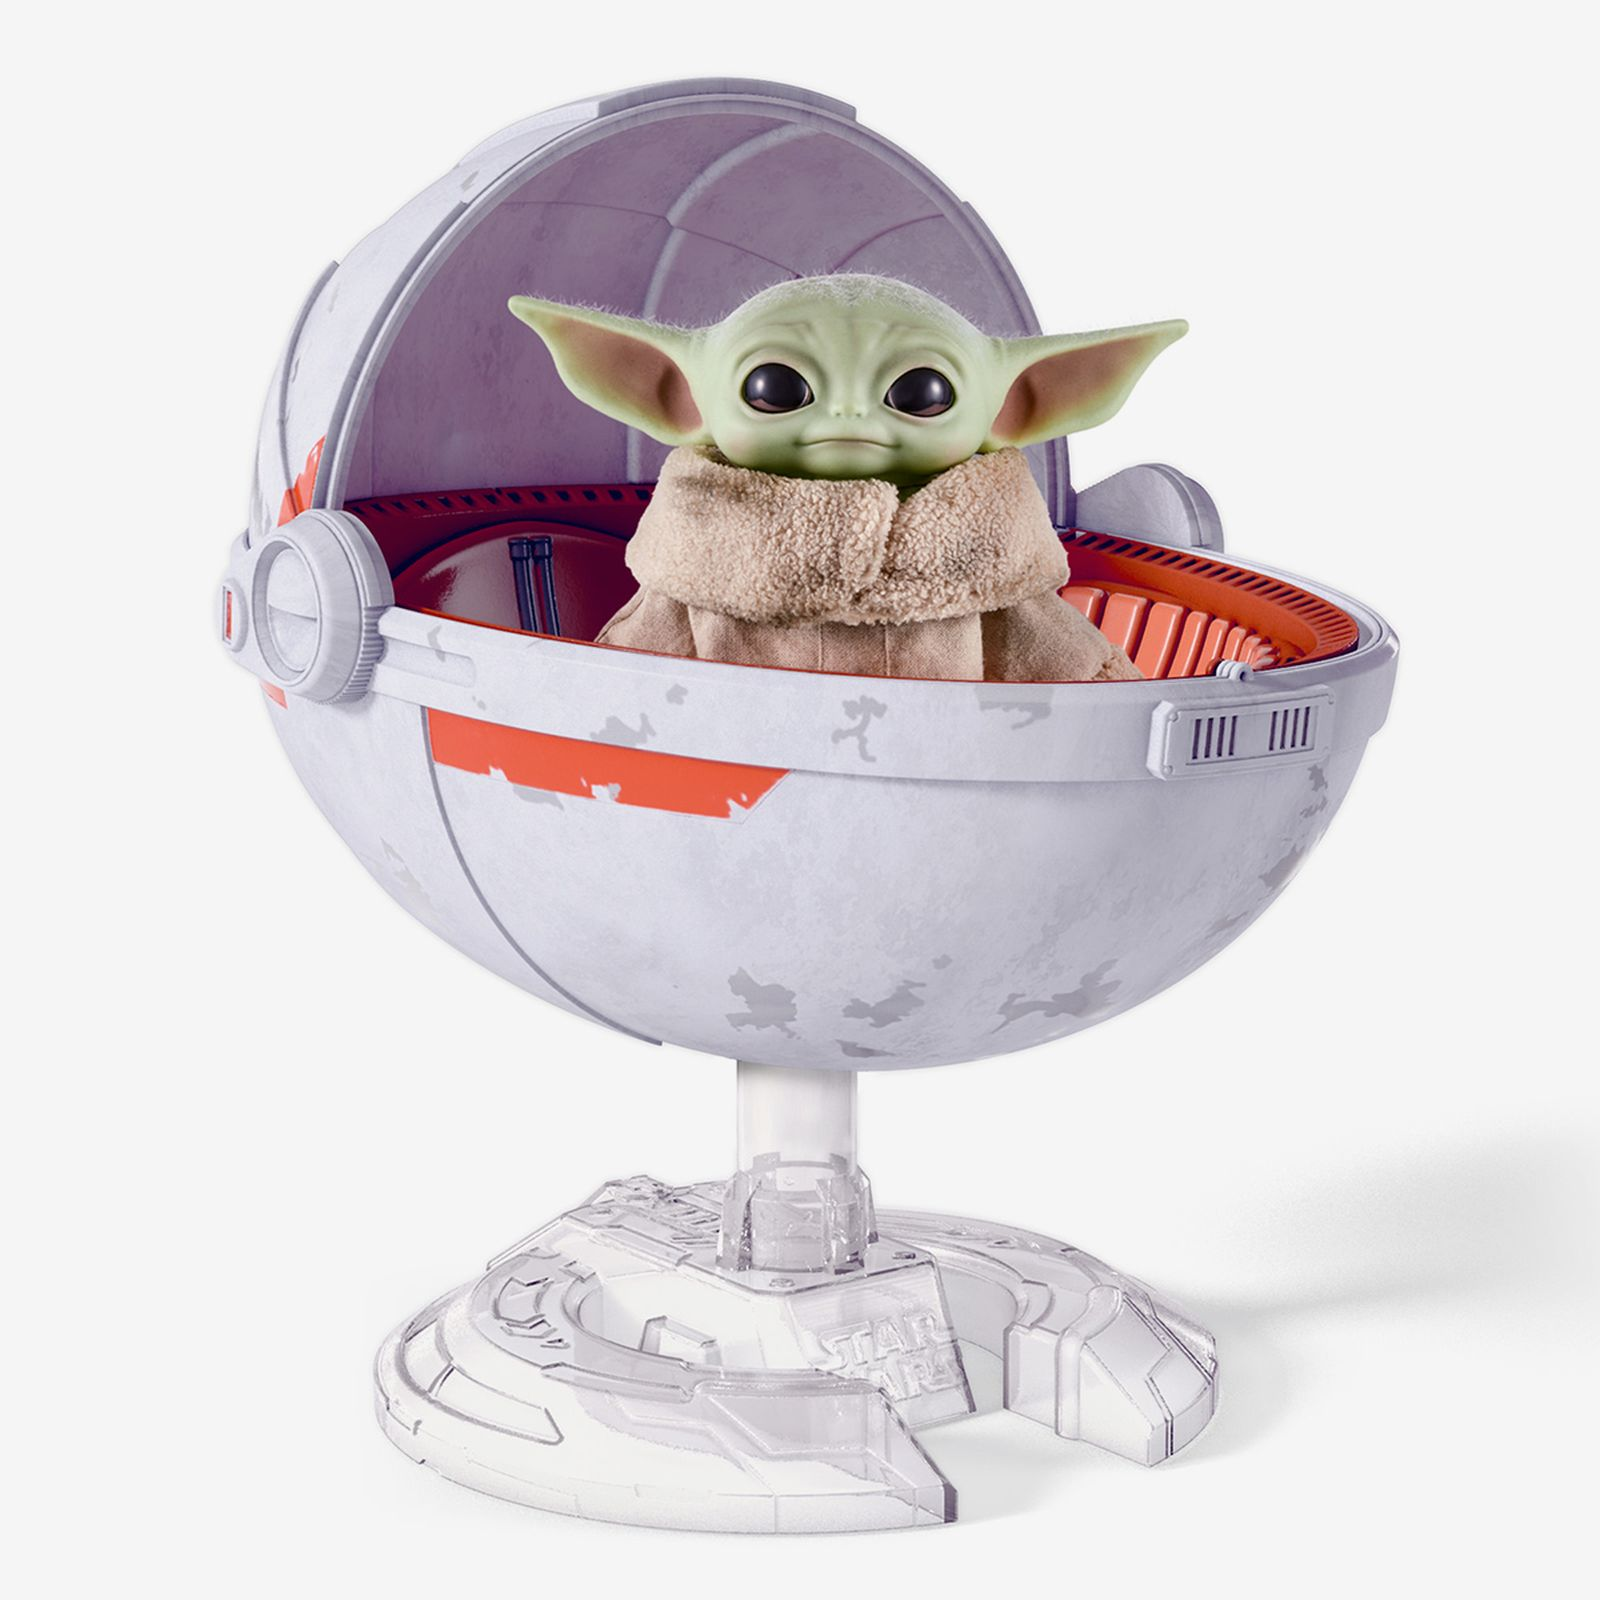 mattel-star-wars-baby-yoda-auction-02